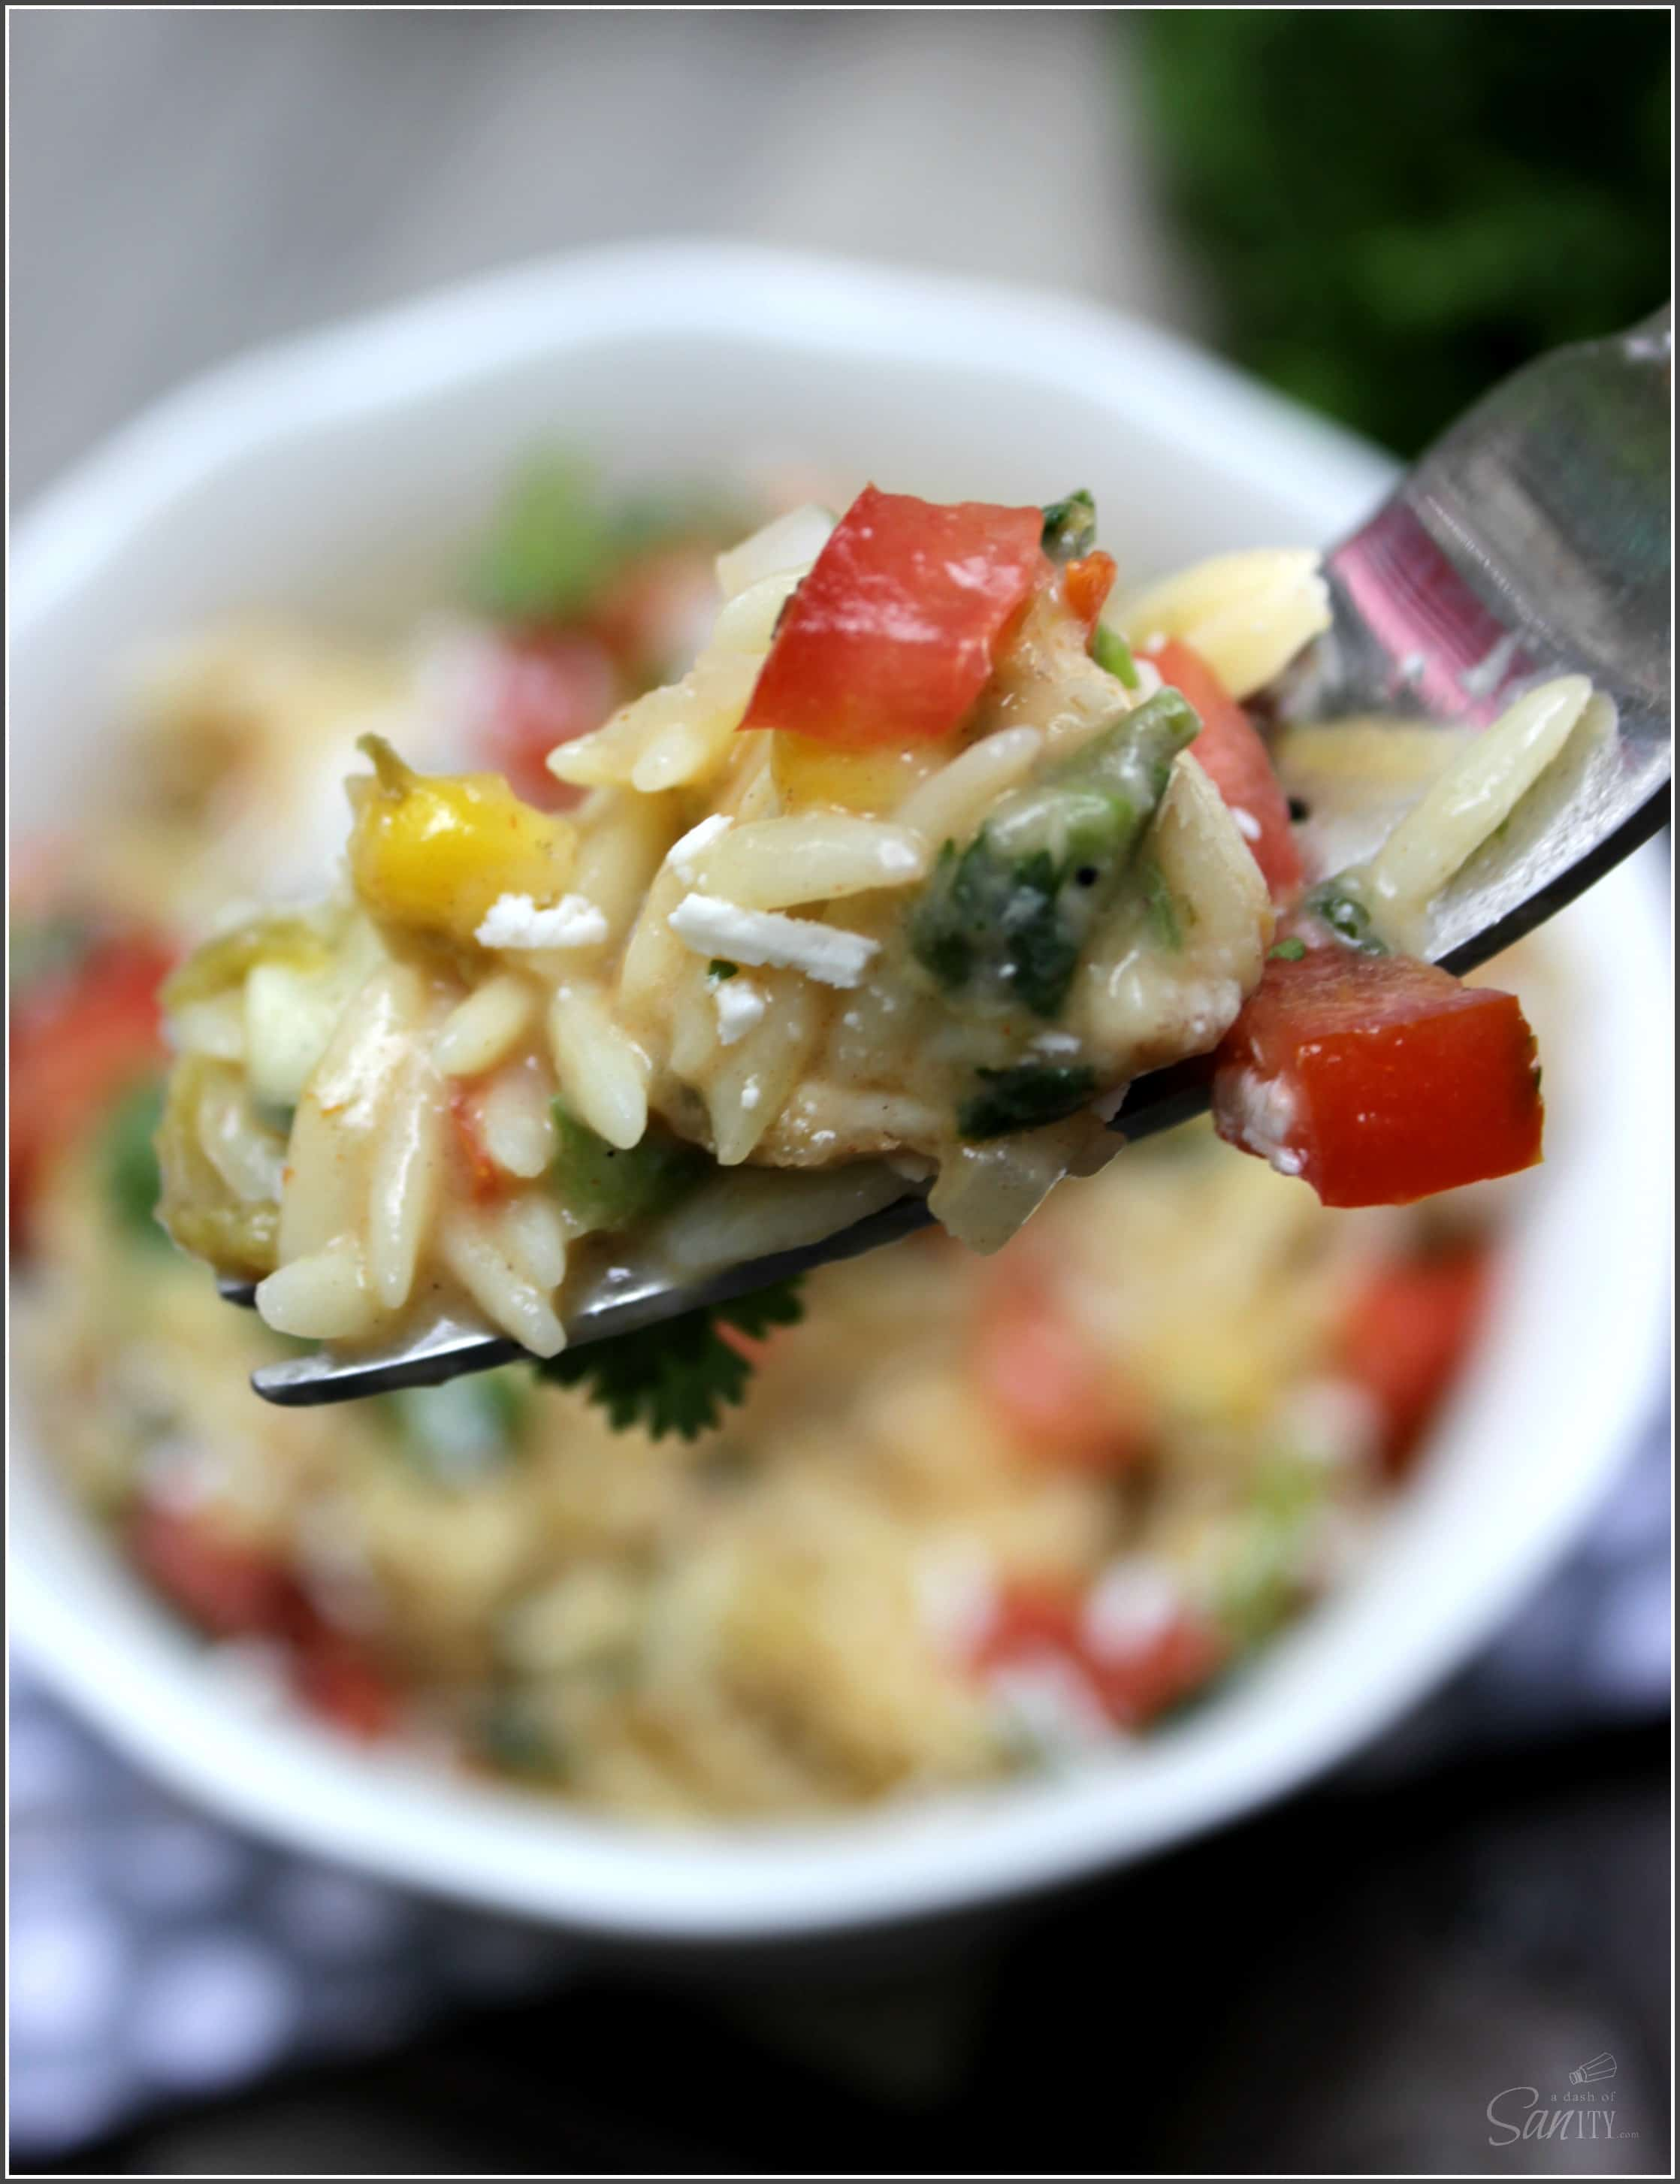 Creamy Chicken Mexican Pasta Bake is made with fresh vegetables, herbs, and chicken- making this a flavorful dish with Mexican flavor.